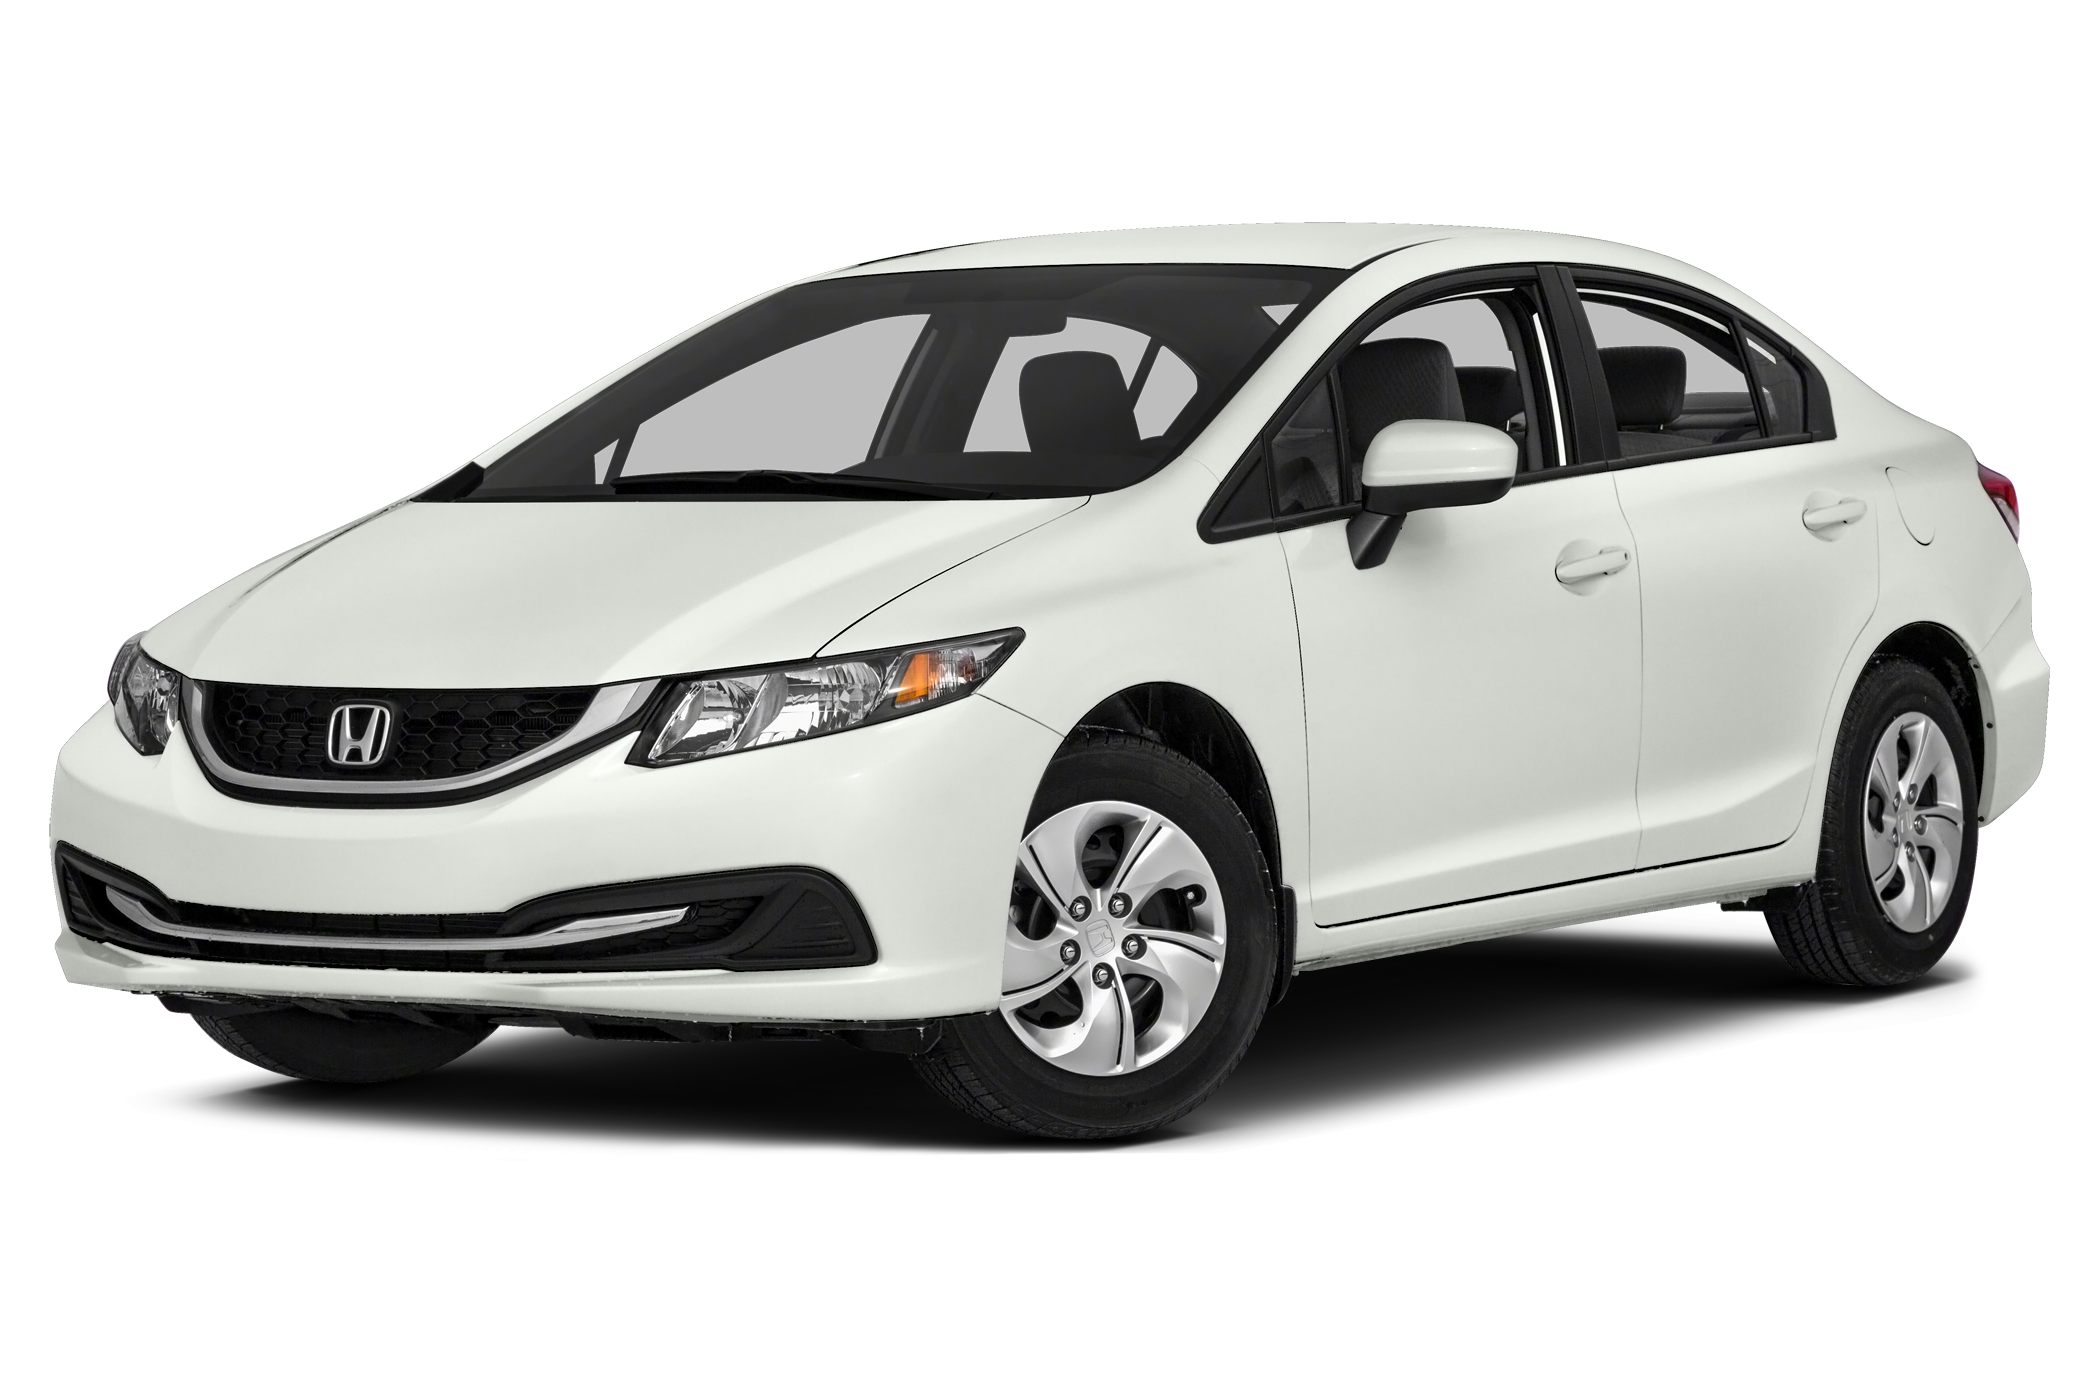 2014 Honda Civic LX This particular Honda Civic has taken another step in the right direction with